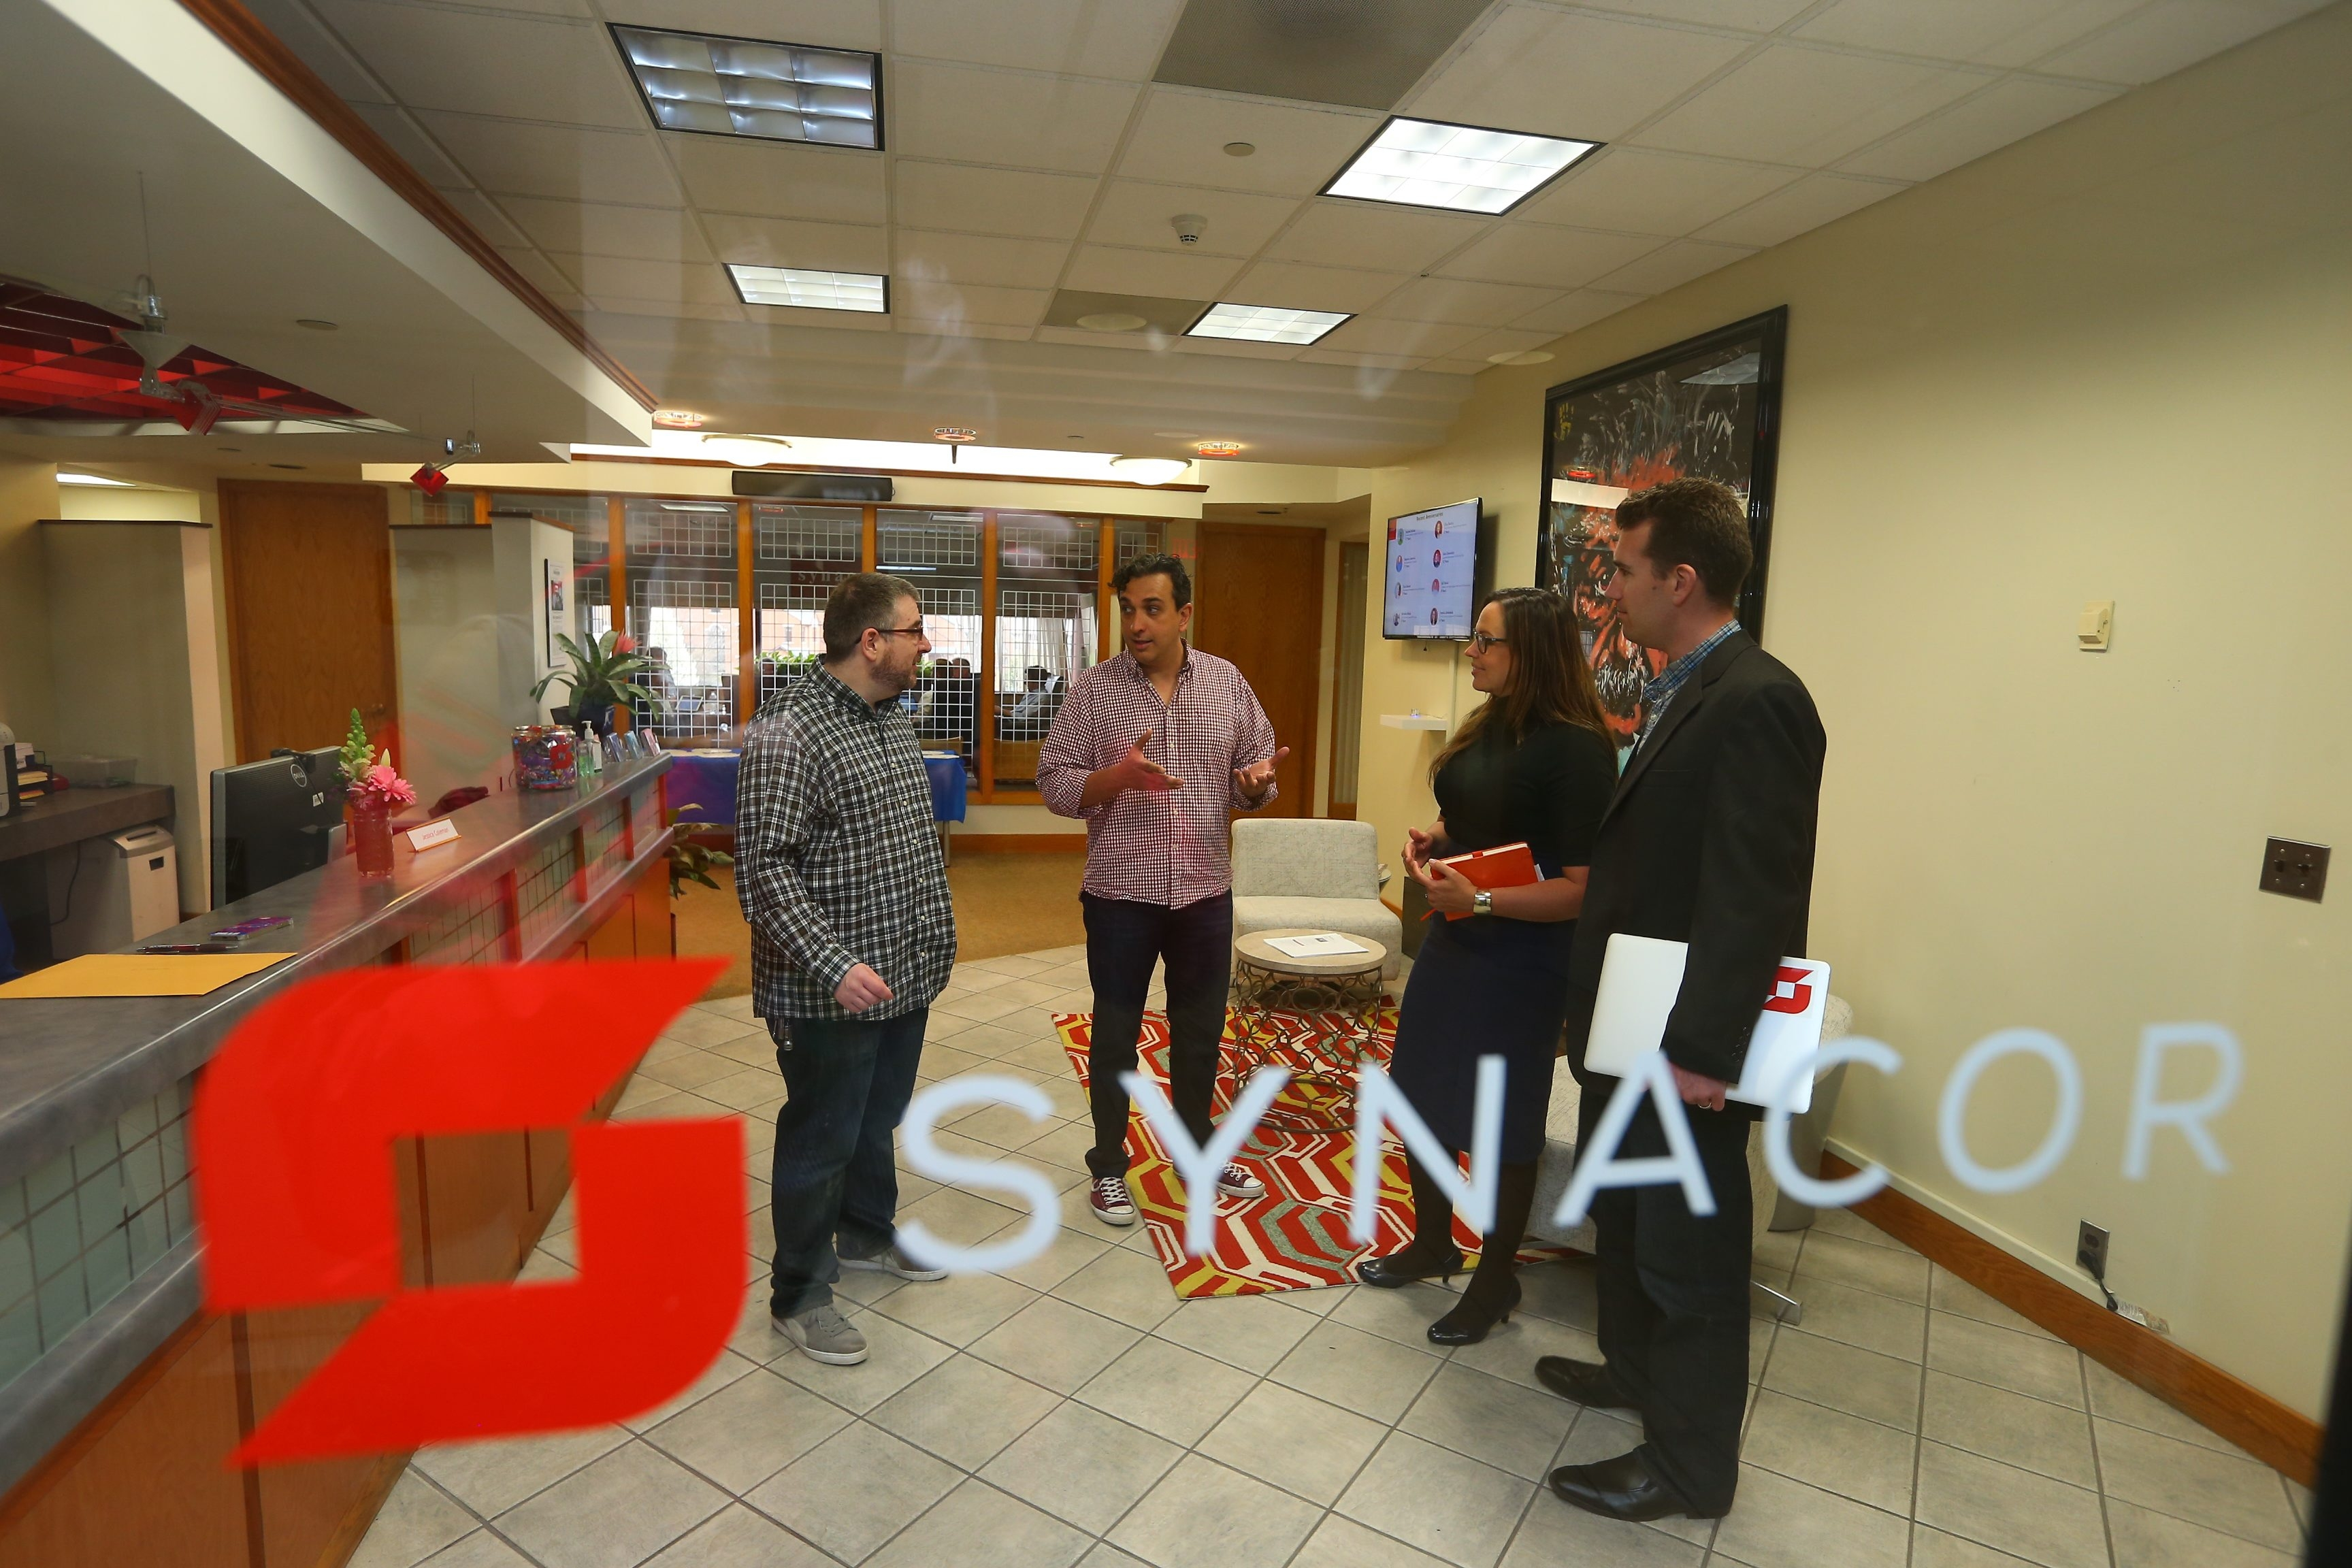 From left, John McDonald Sr., director of business operations; Mark Matias, senior systems architect; Erin Johnson, vice president of human resources; and John Kavanagh, senior director of products, meet in Synacor headquarters in Buffalo on Thursday.